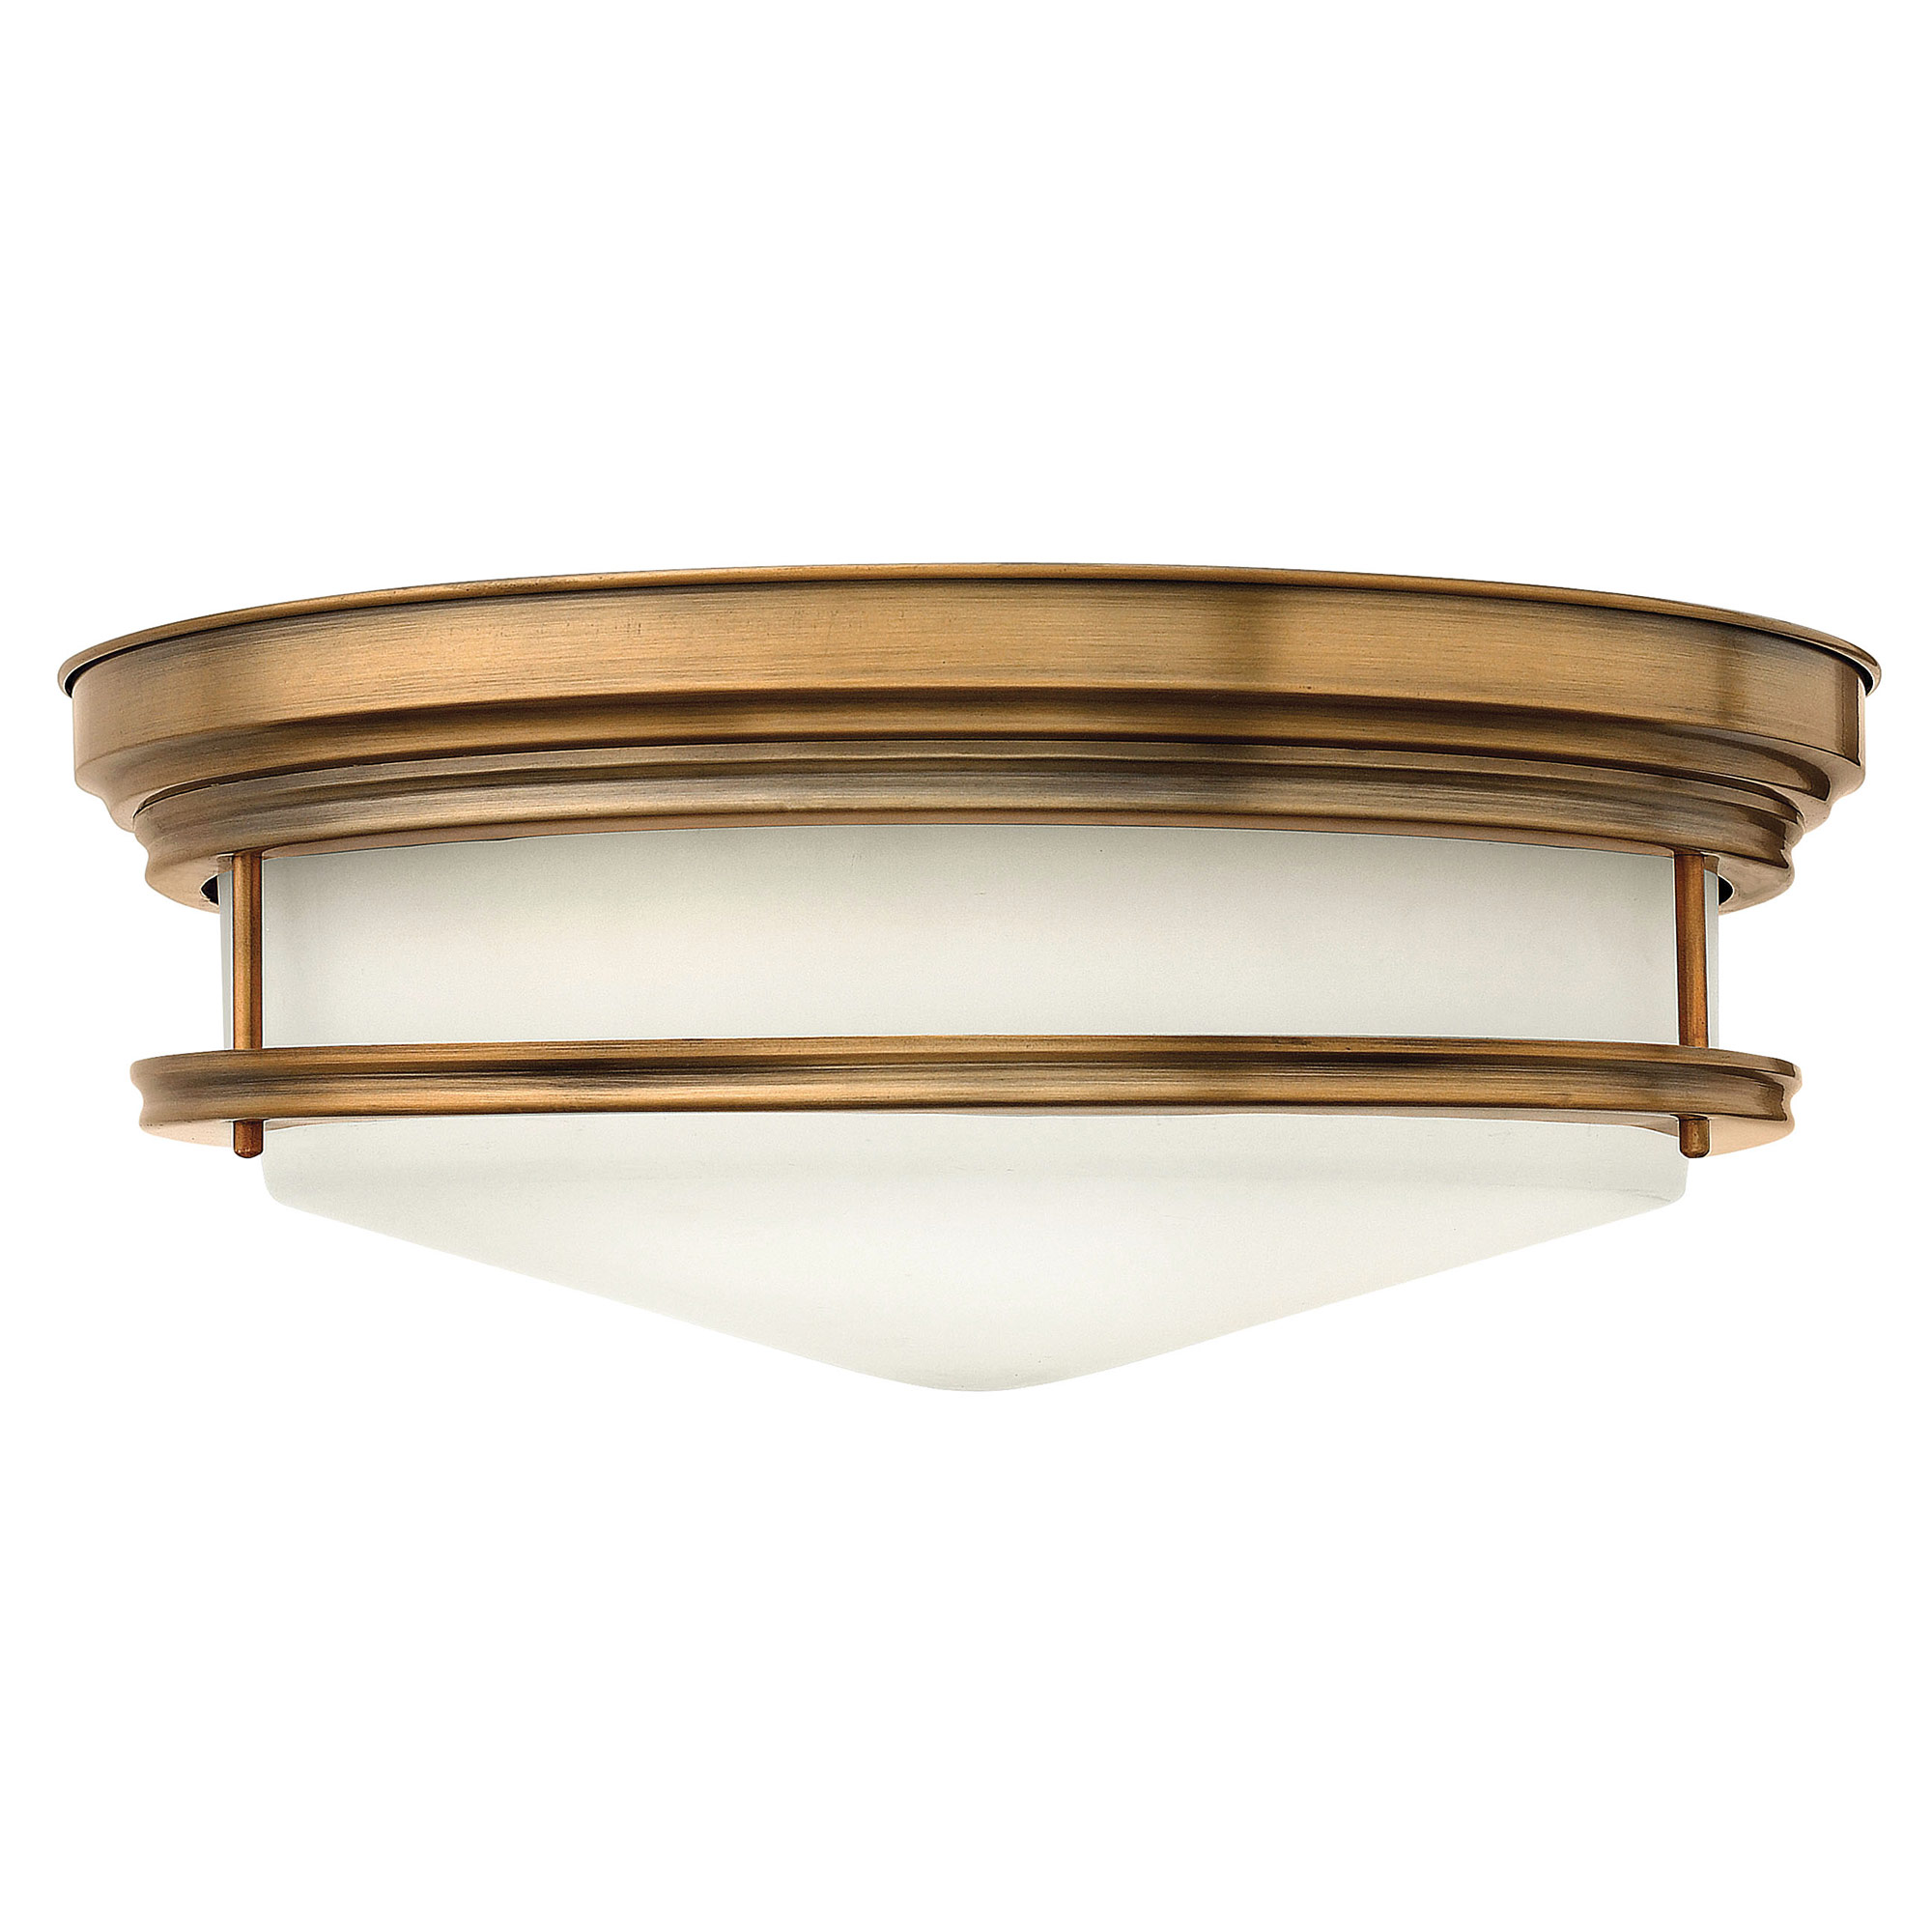 Hadley Ceiling Light Fixture Brushed Bronze by Hinkley